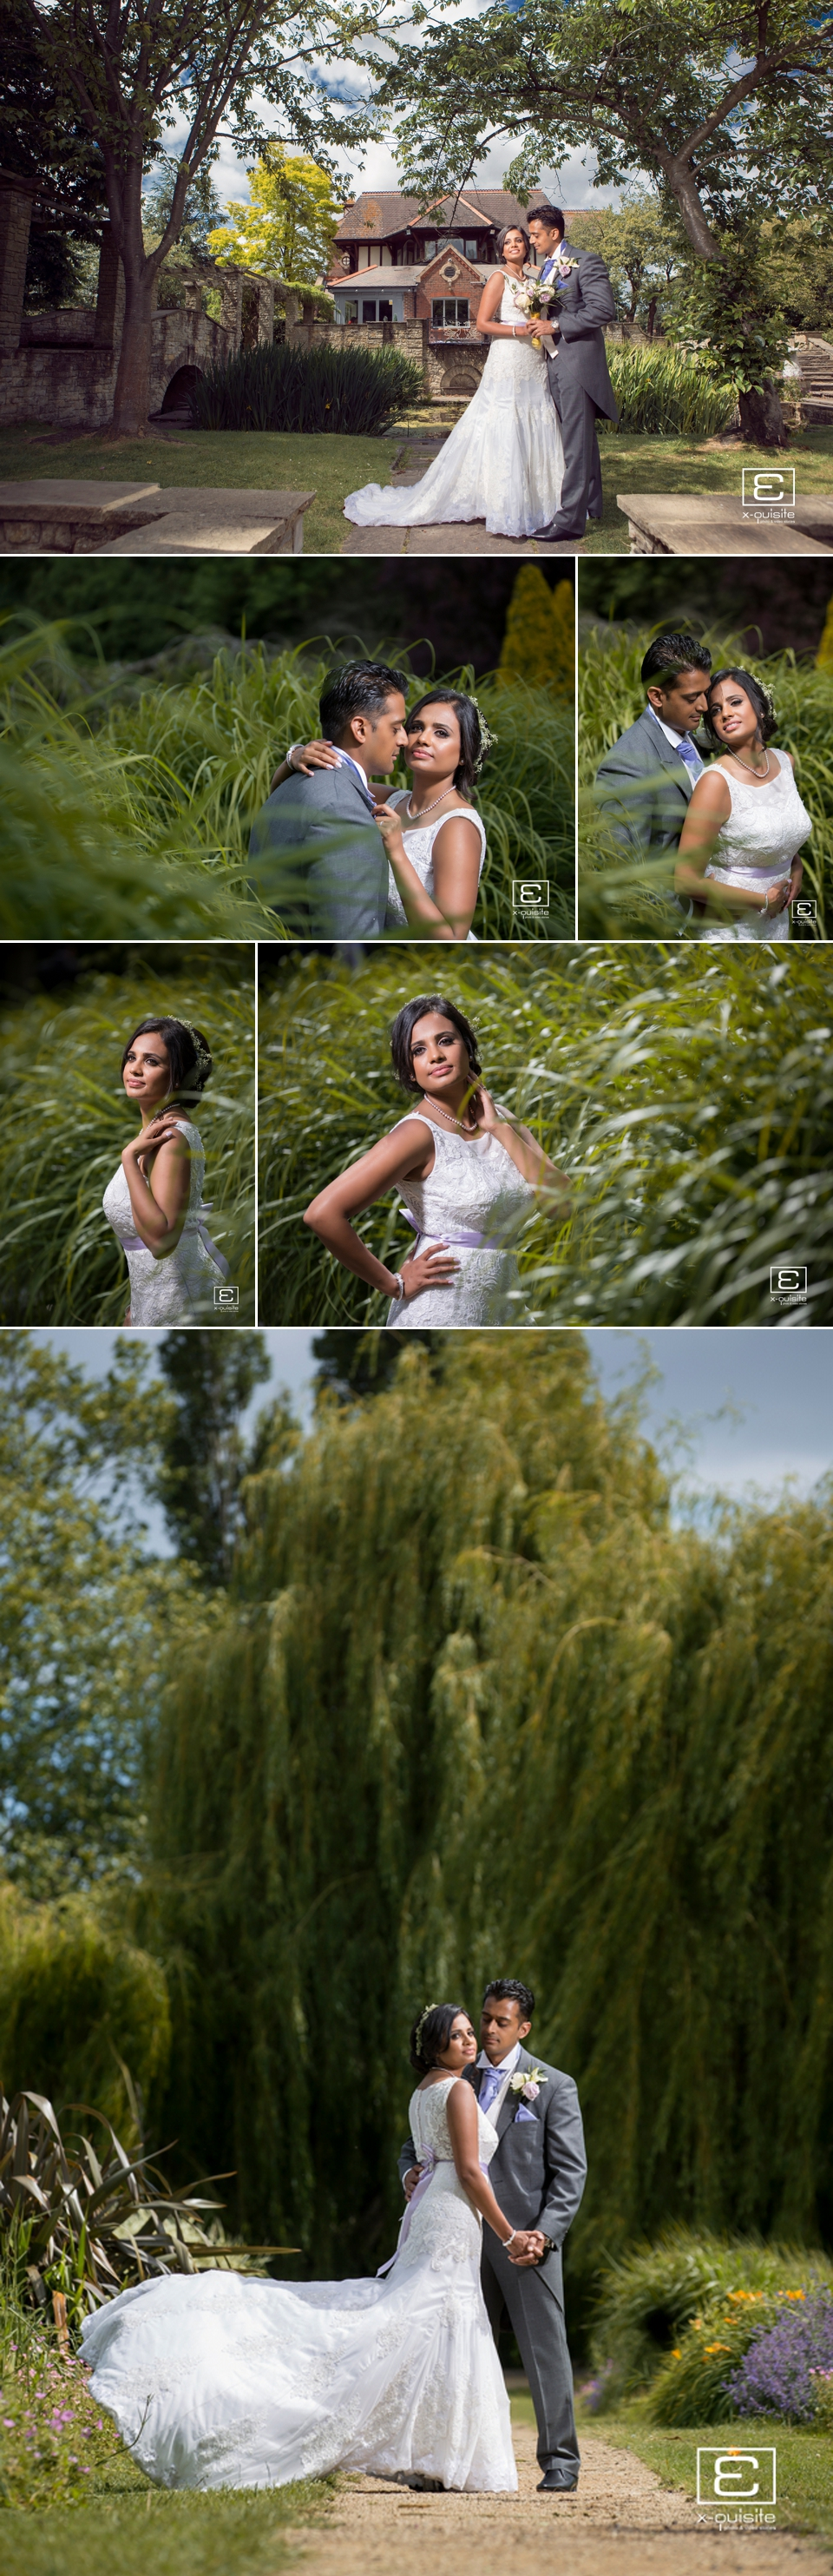 Newland-Manor-Hindu-Wedding_03